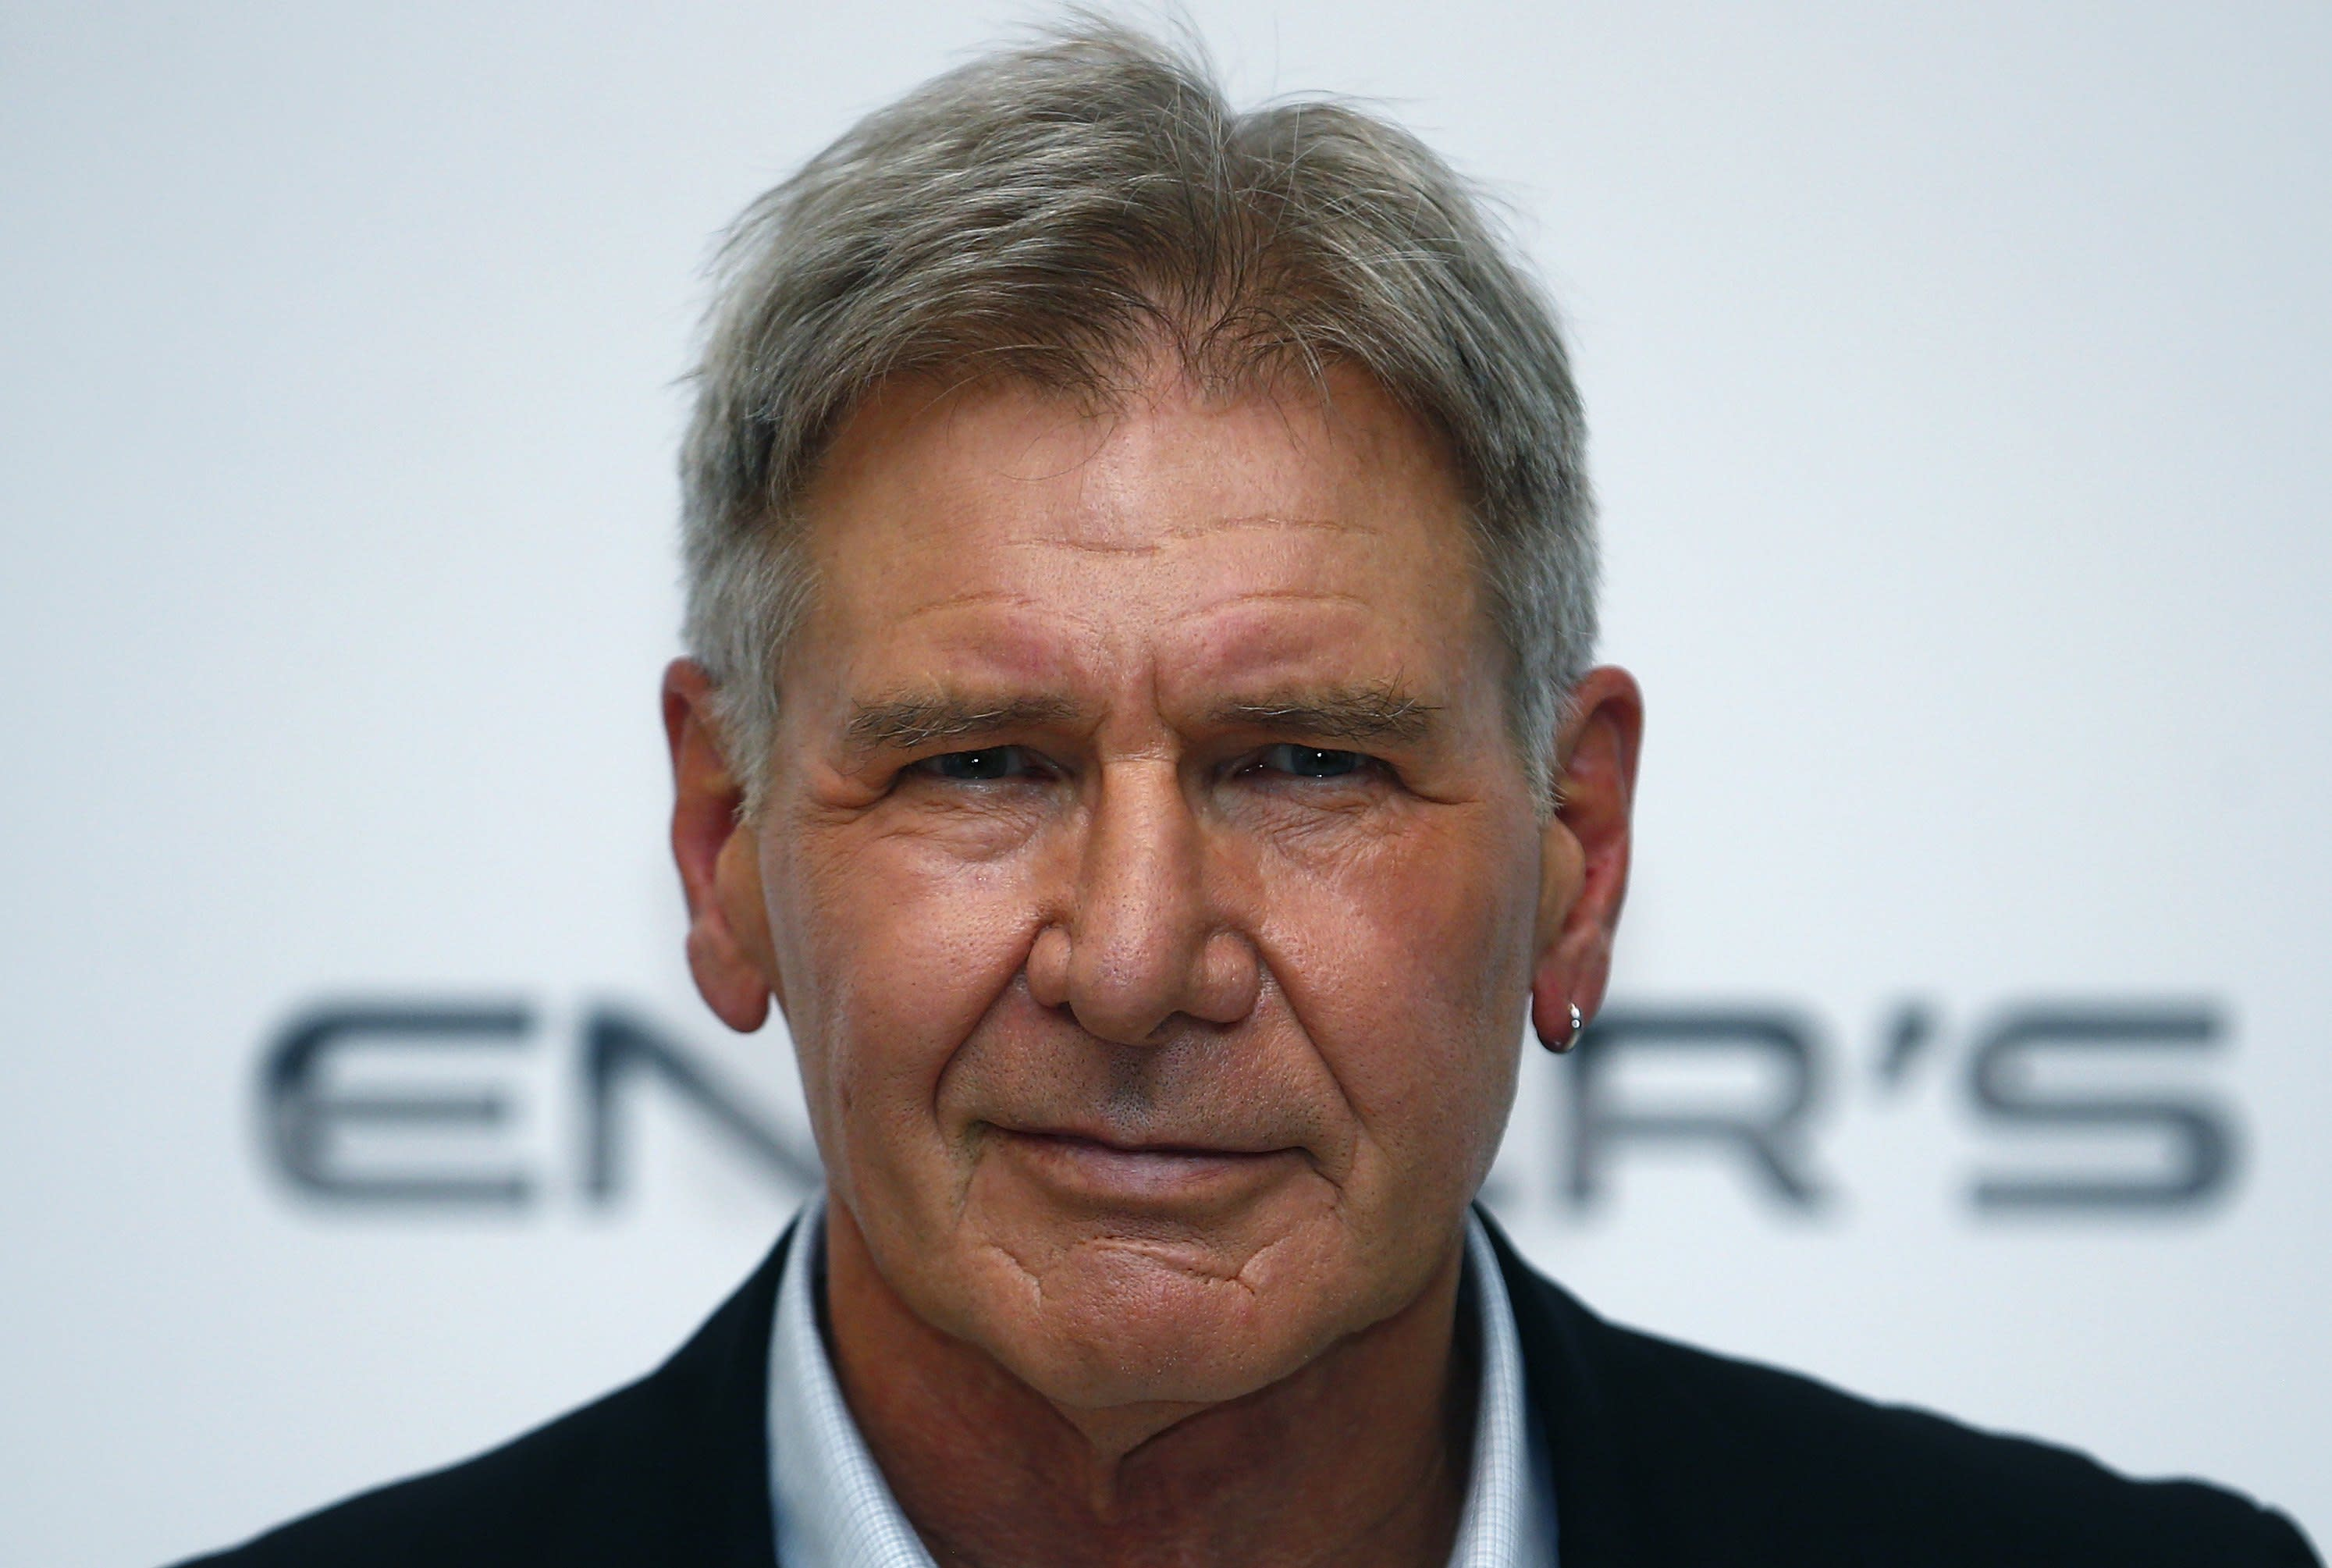 Actor Harrison Ford injured in small plane crash near Los Angeles - report